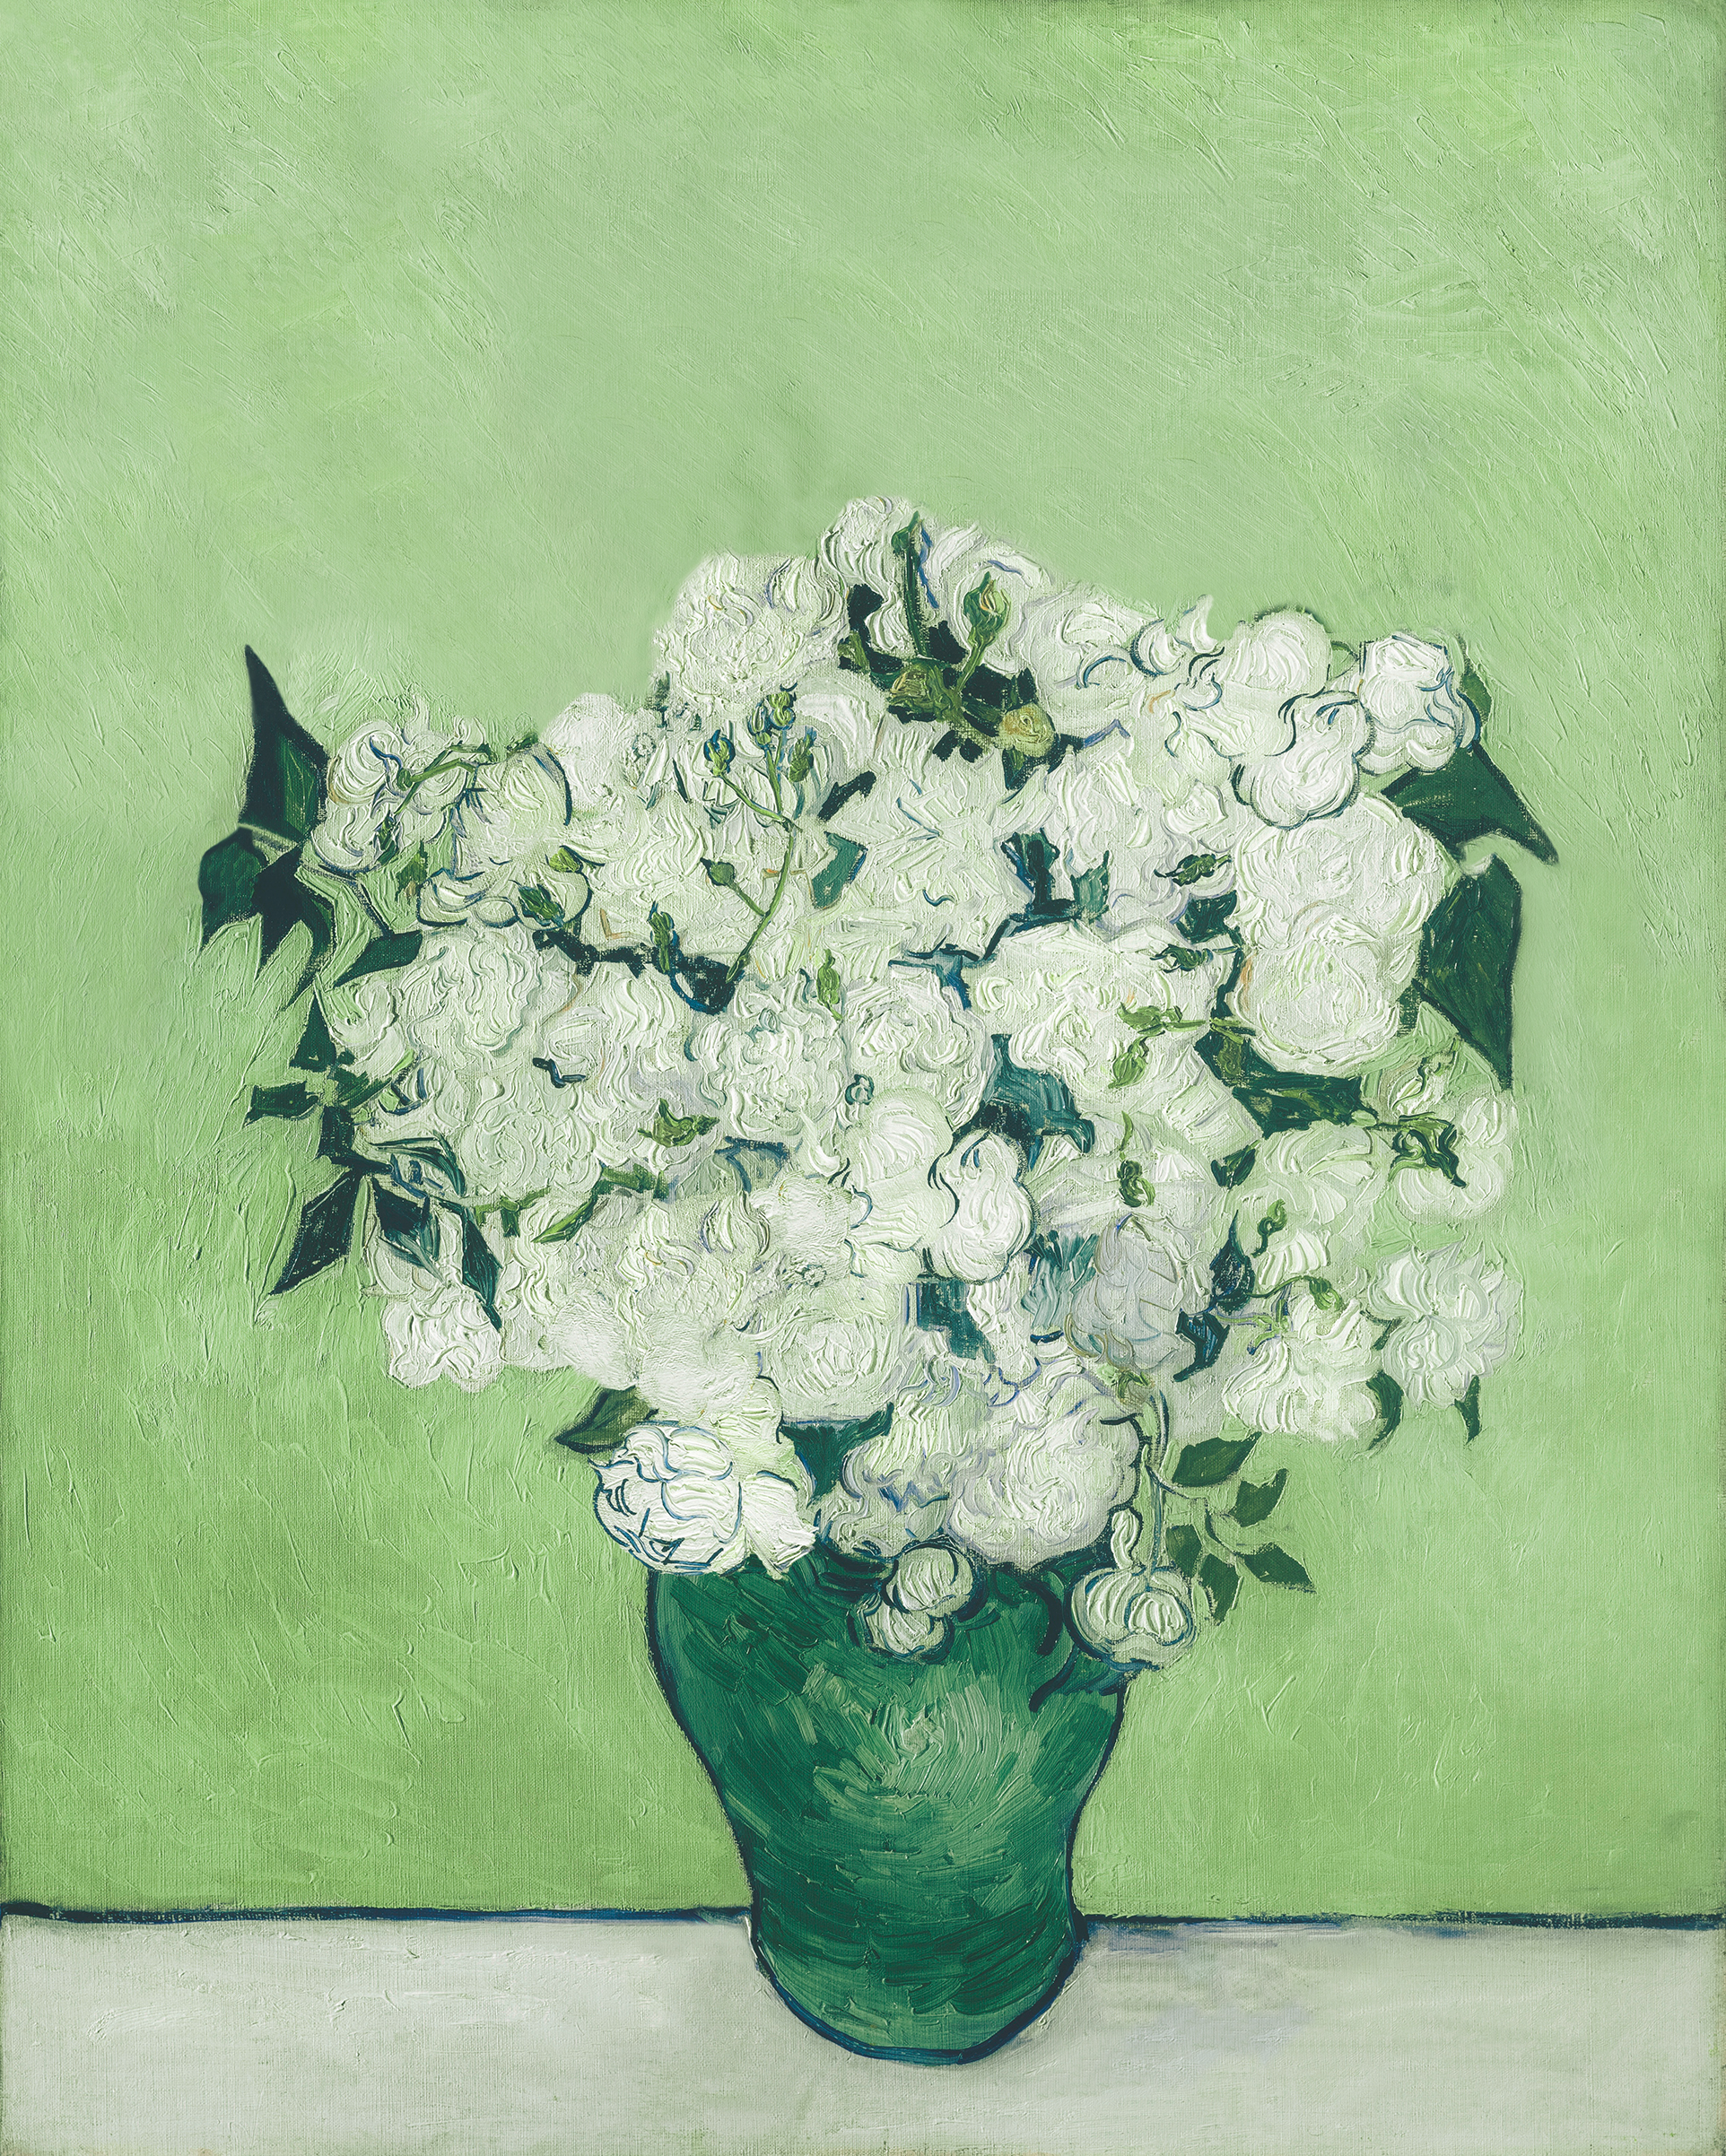 white flowers with green leaves in a green vase on a gray background with a light green backdrop